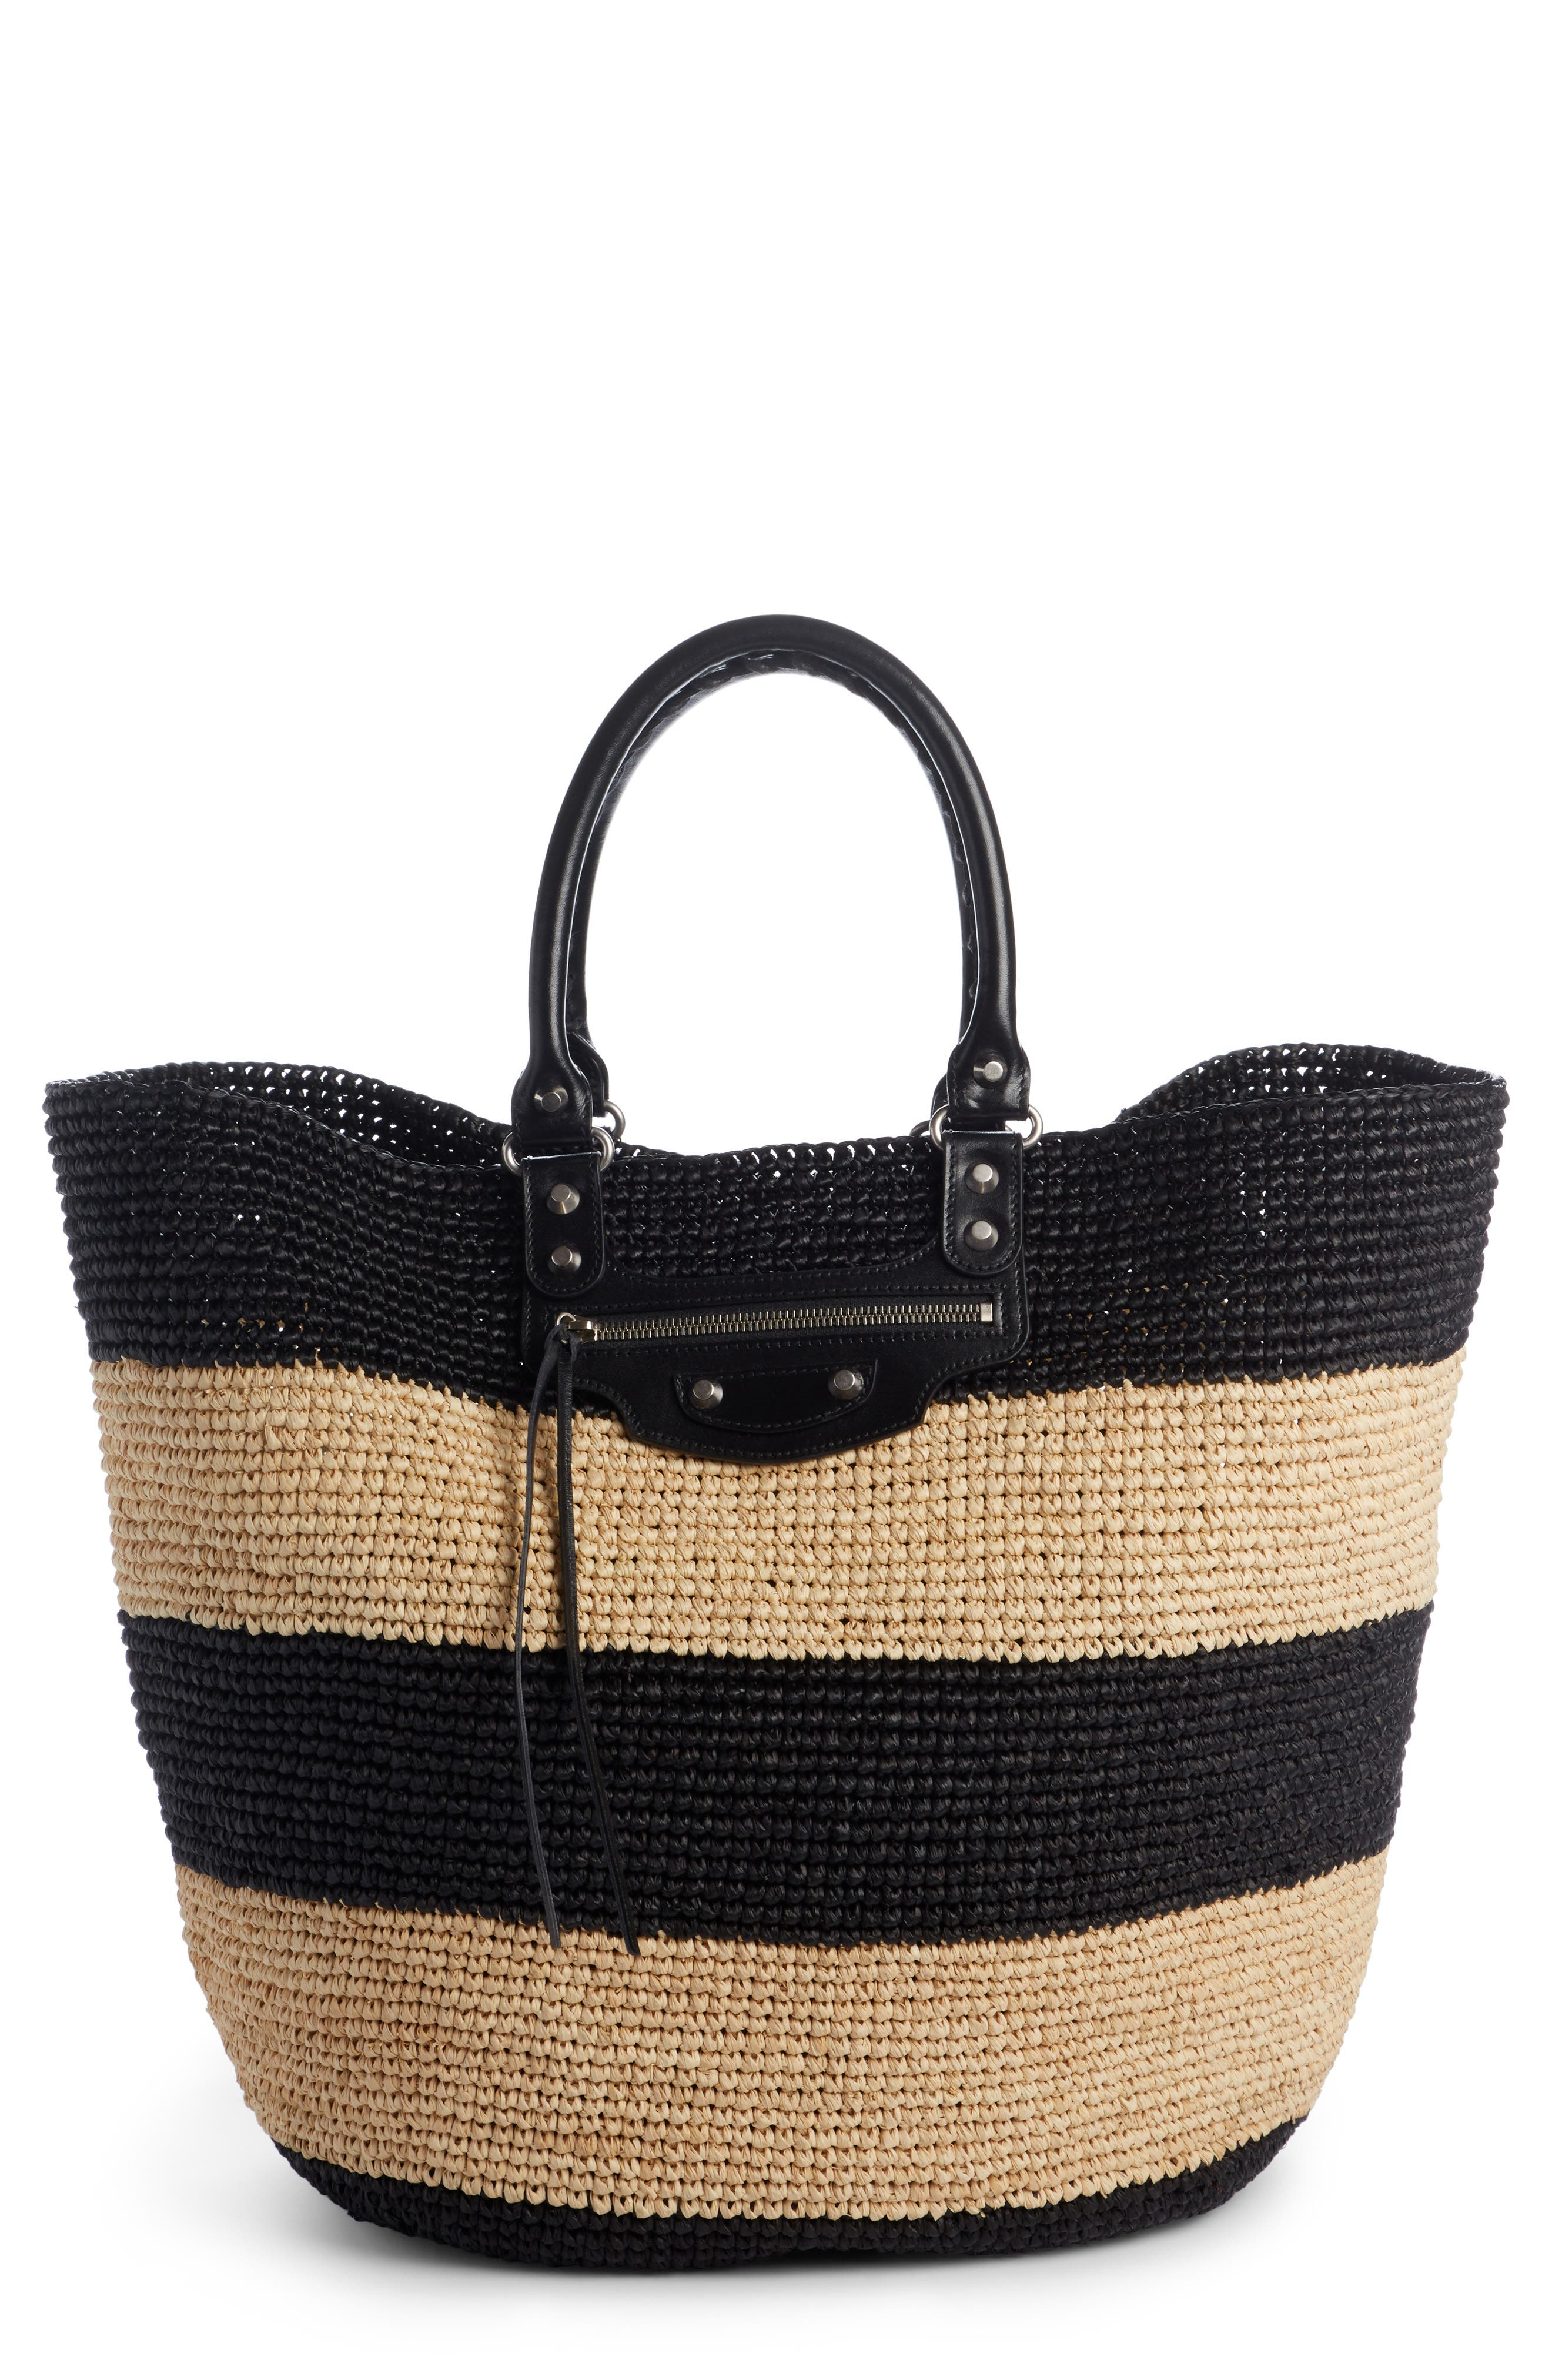 Alternate Image 1 Selected - Balenciaga Large Panier Woven Tote with Calfskin Leather Trim